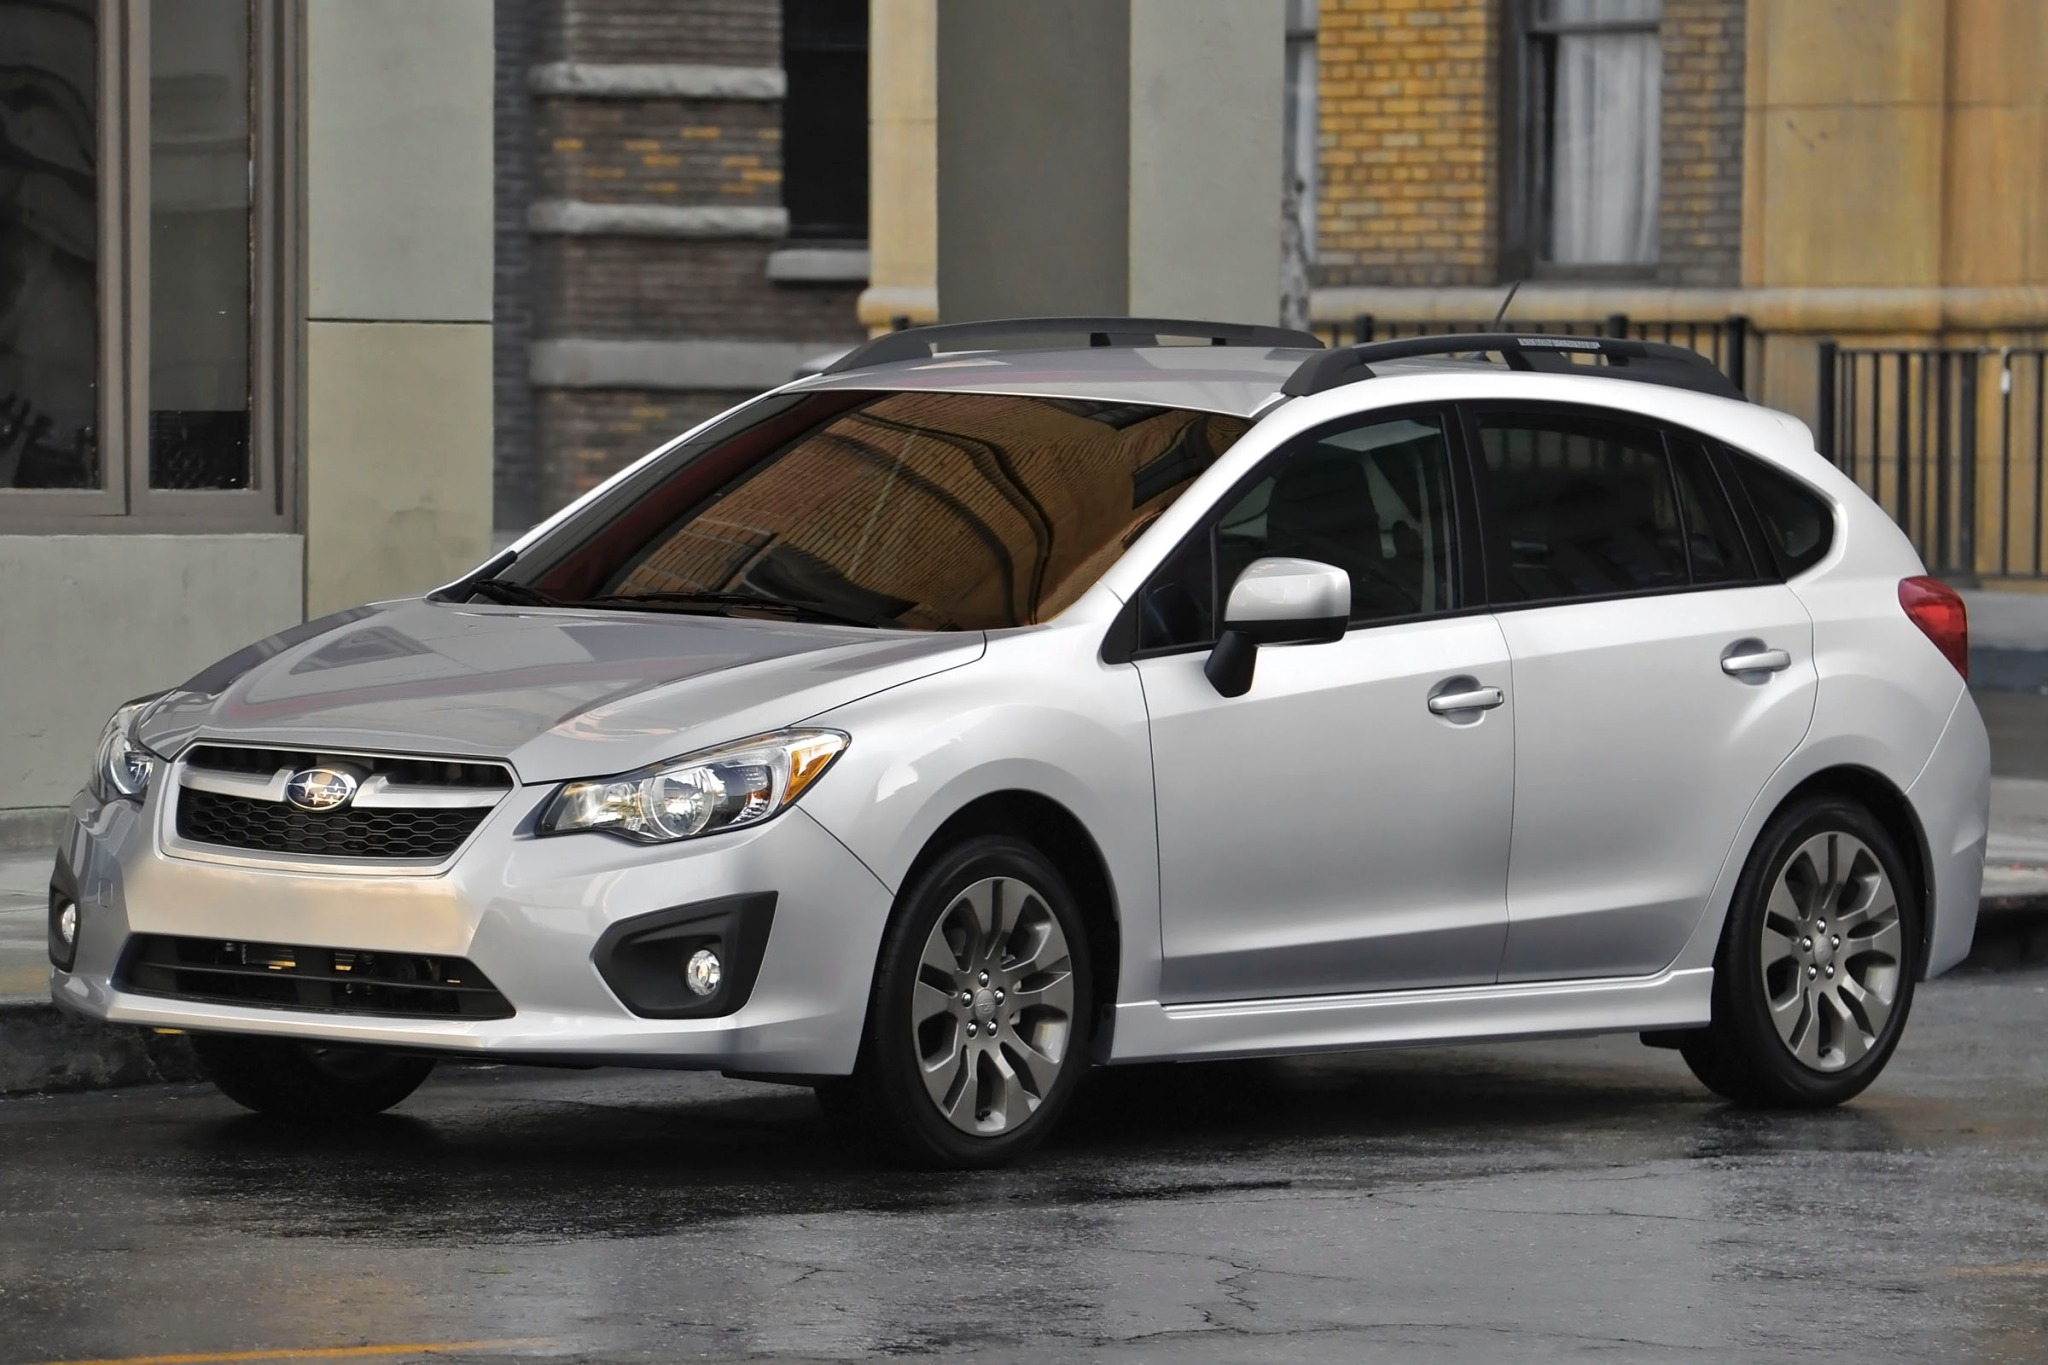 2014 subaru impreza - information and photos - zombiedrive